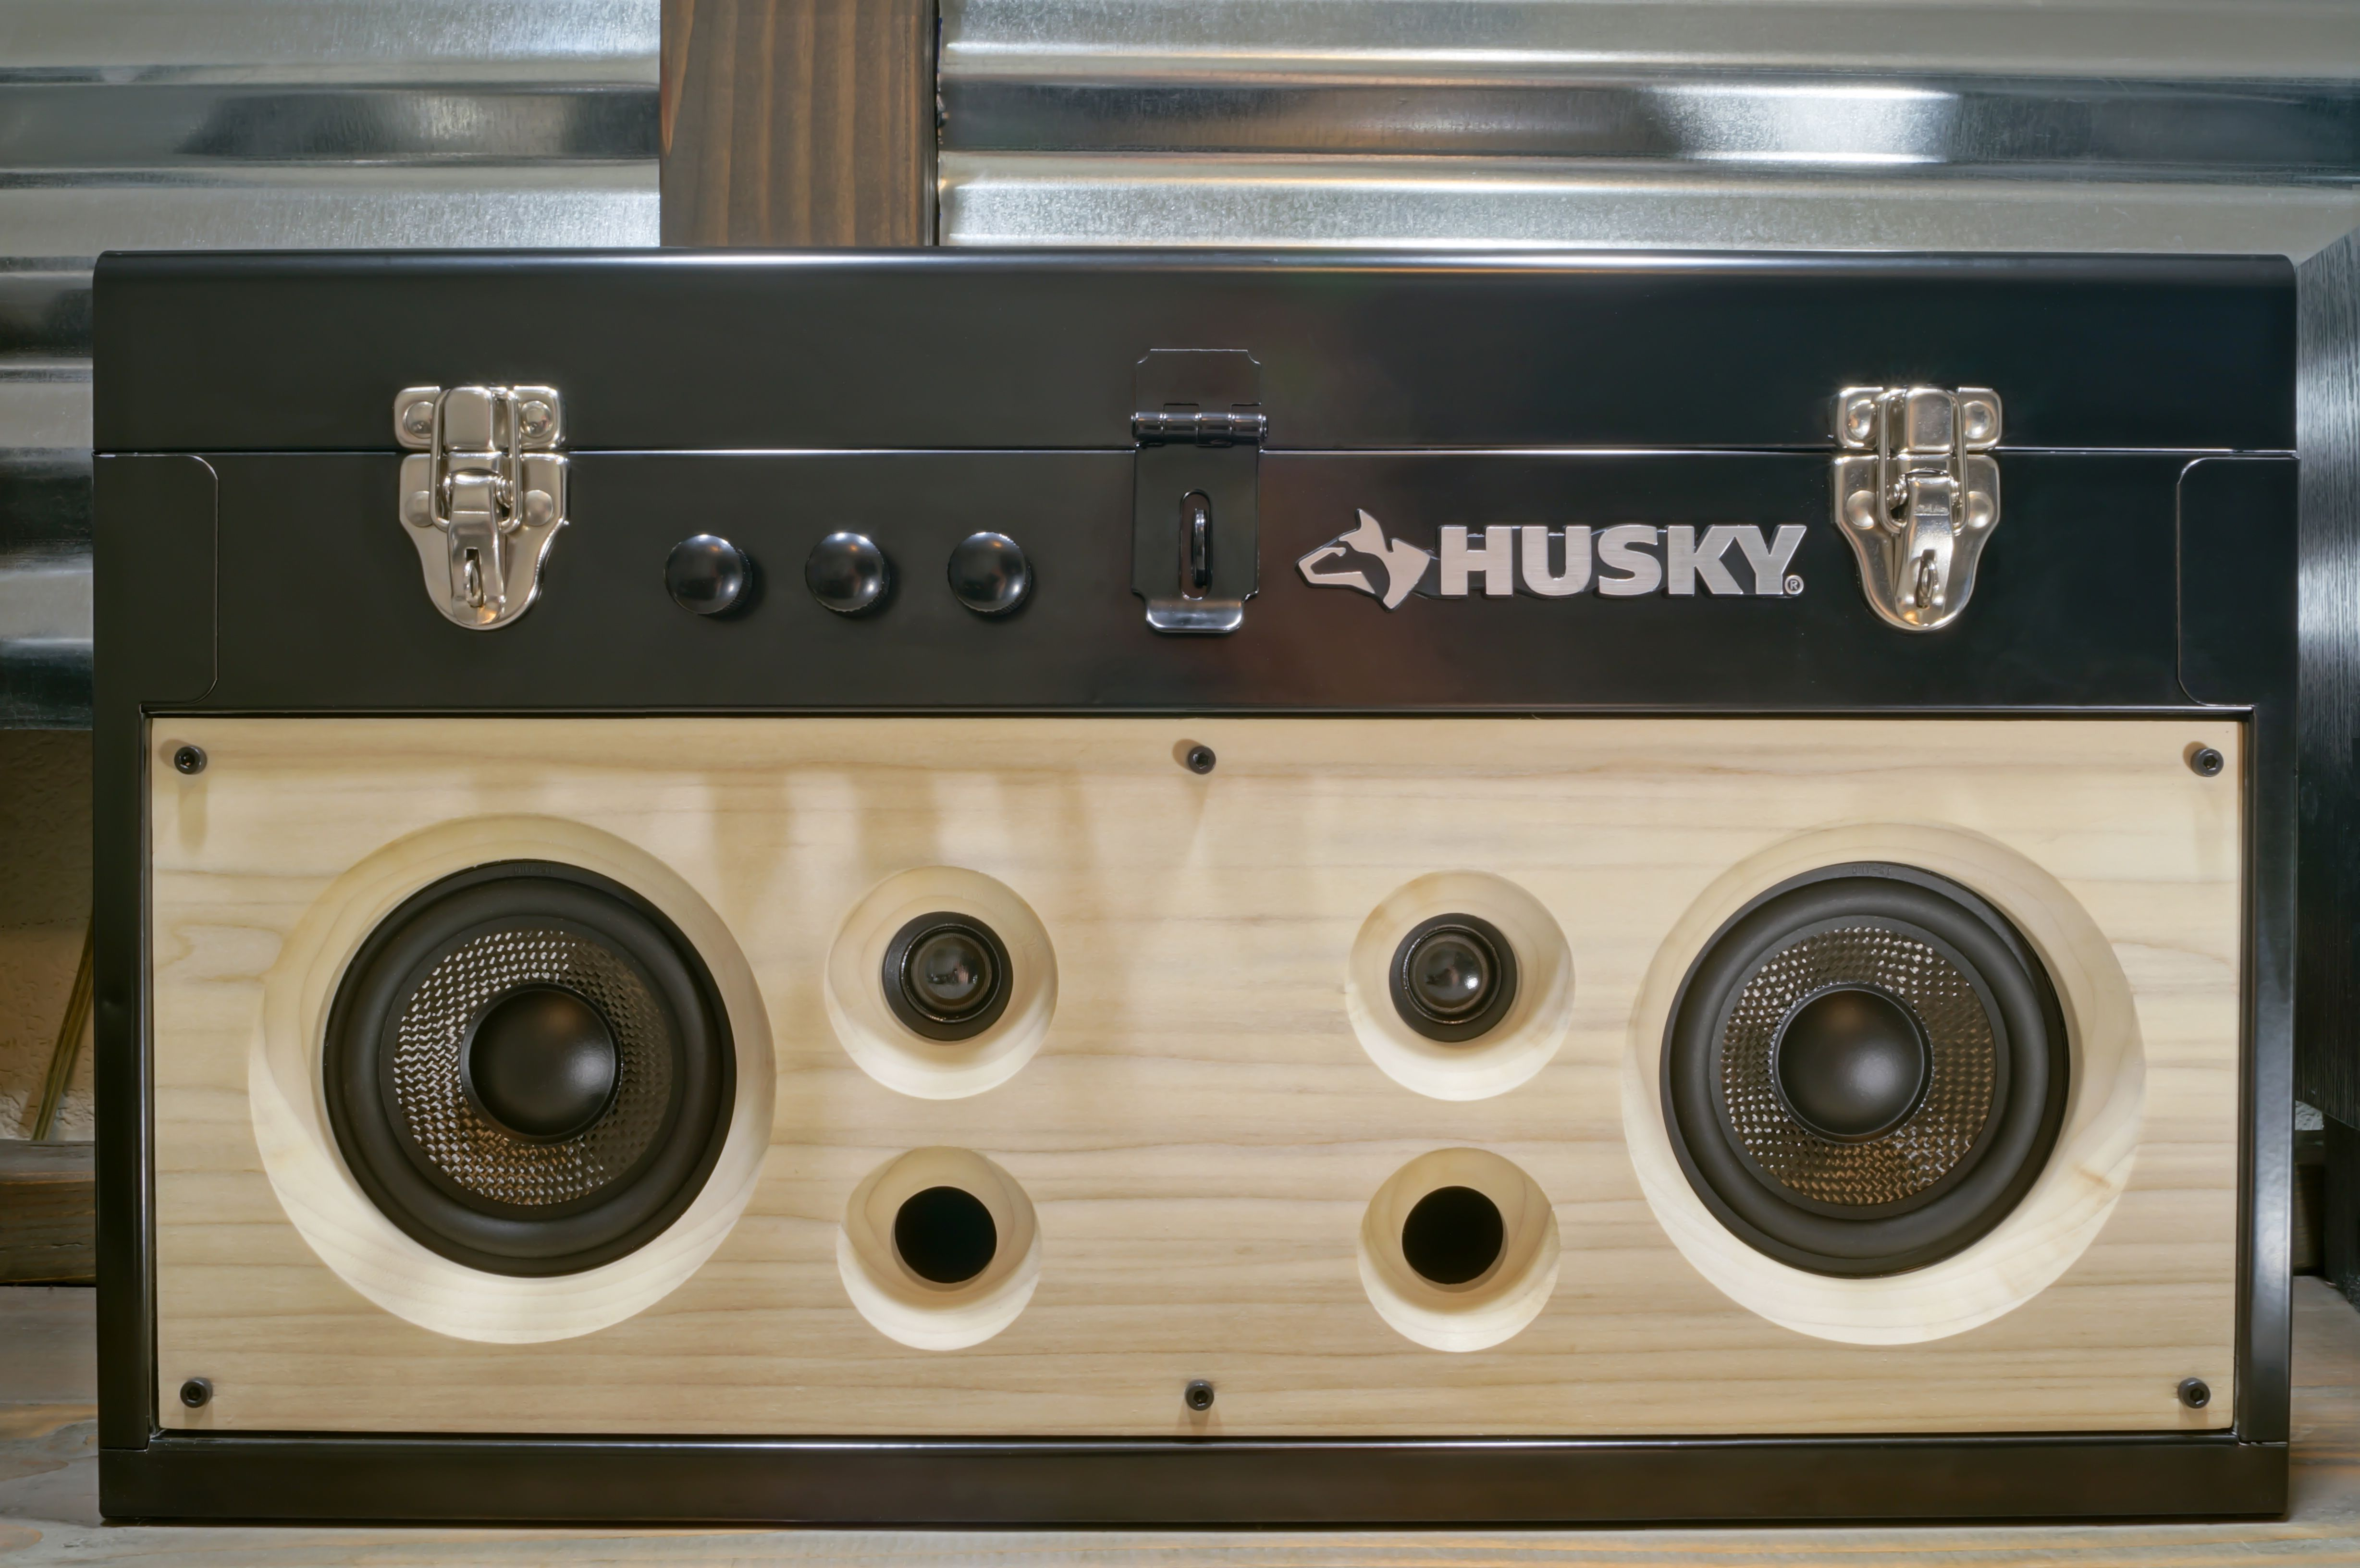 Diy Husky Tool Box Stereo Boombox V2 Completely Rechargeable With Bluetooth And Aux Stereo Inputs Parts Used Diy Speakers Tool Box Diy Diy Bluetooth Speaker